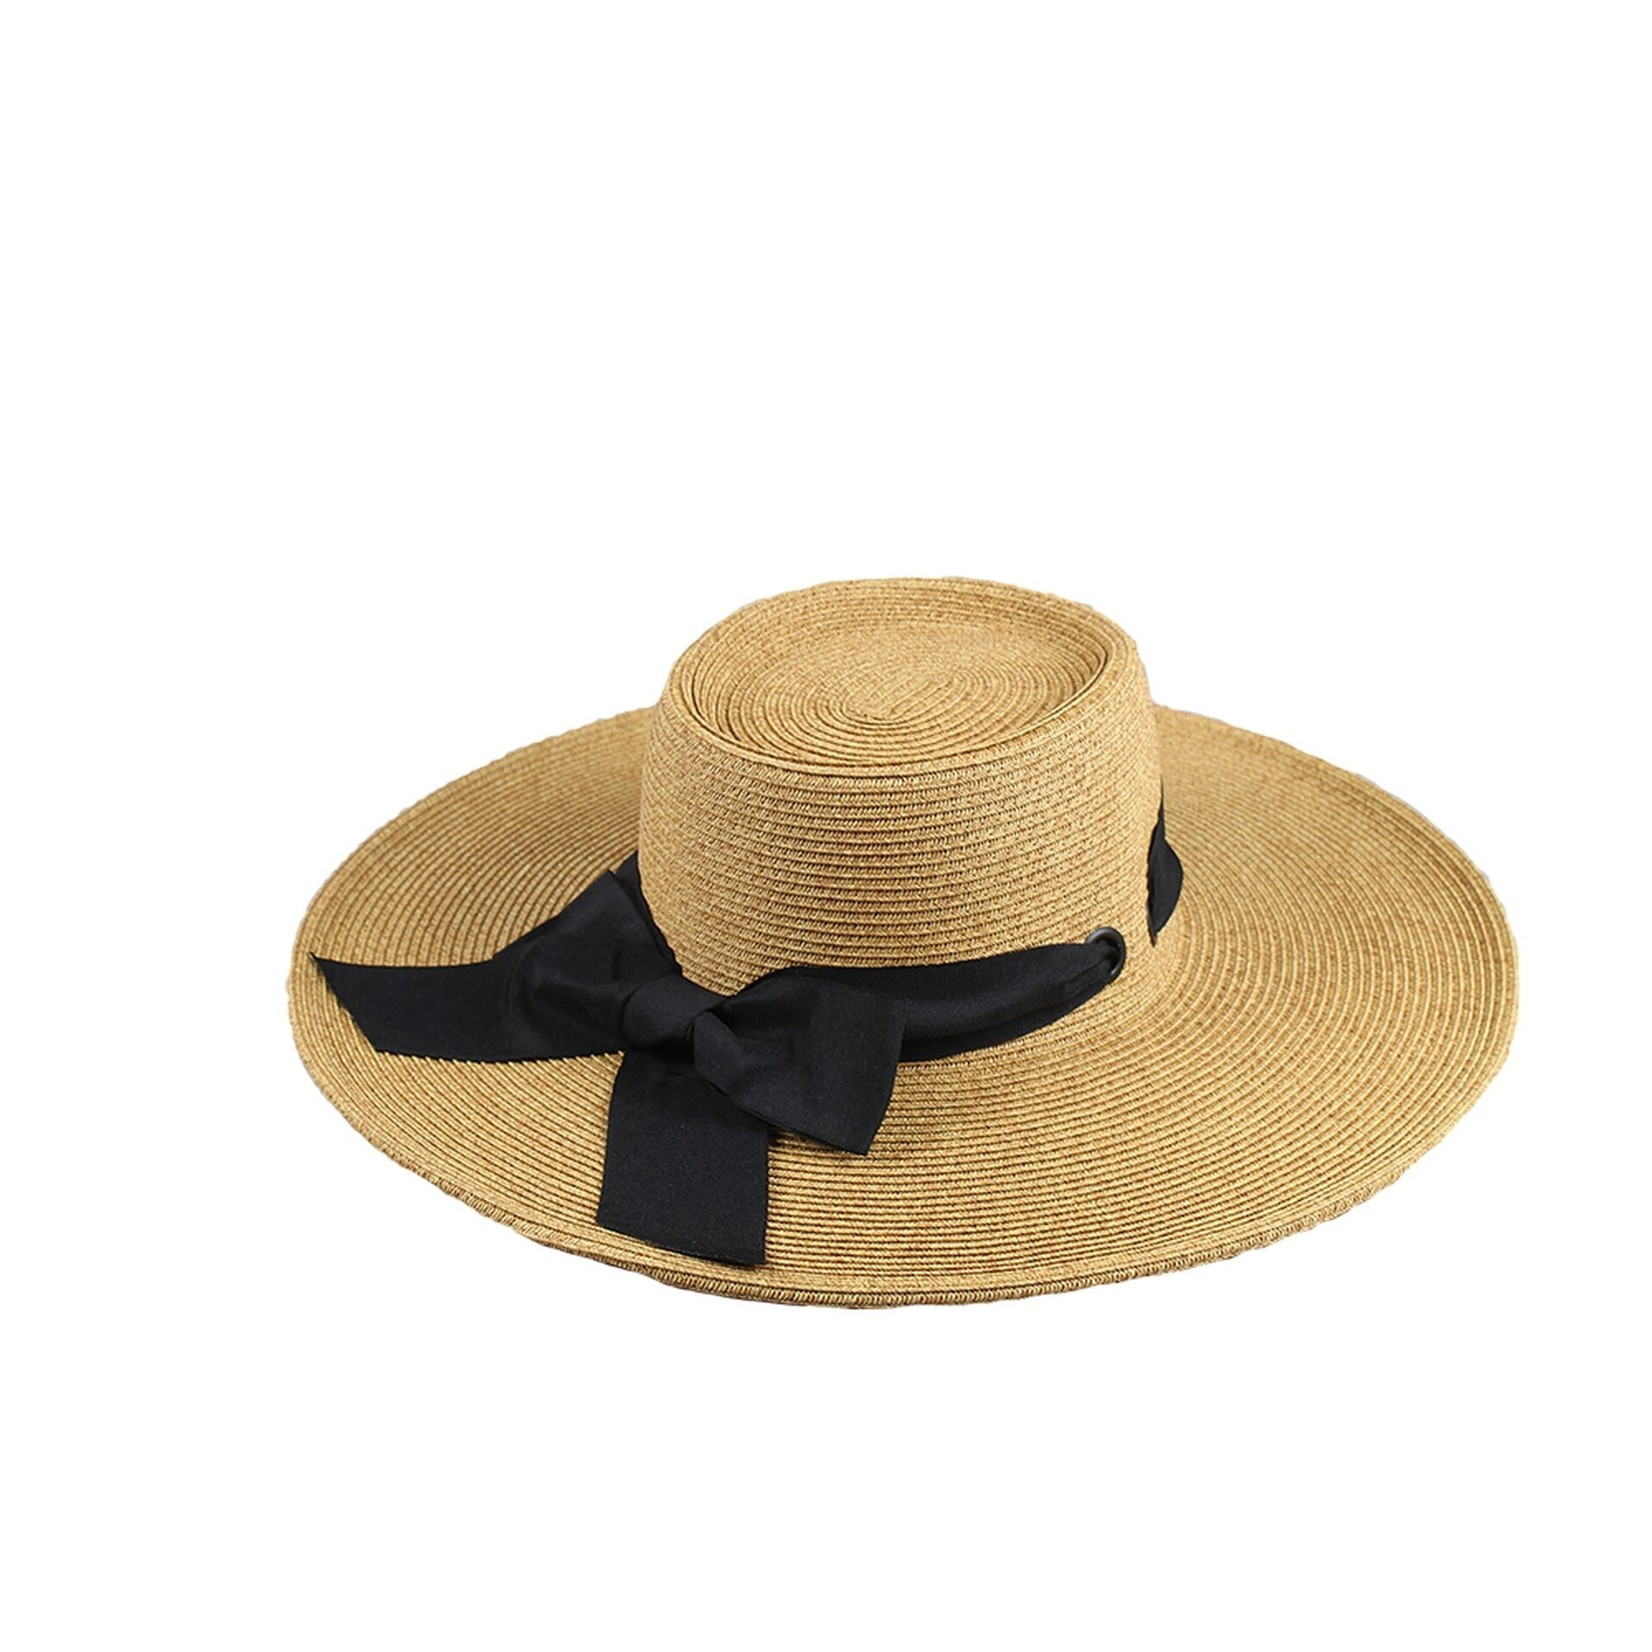 Jeanne Simmons Boater Crown Hat w/ Wide Brim and Black Ribbon